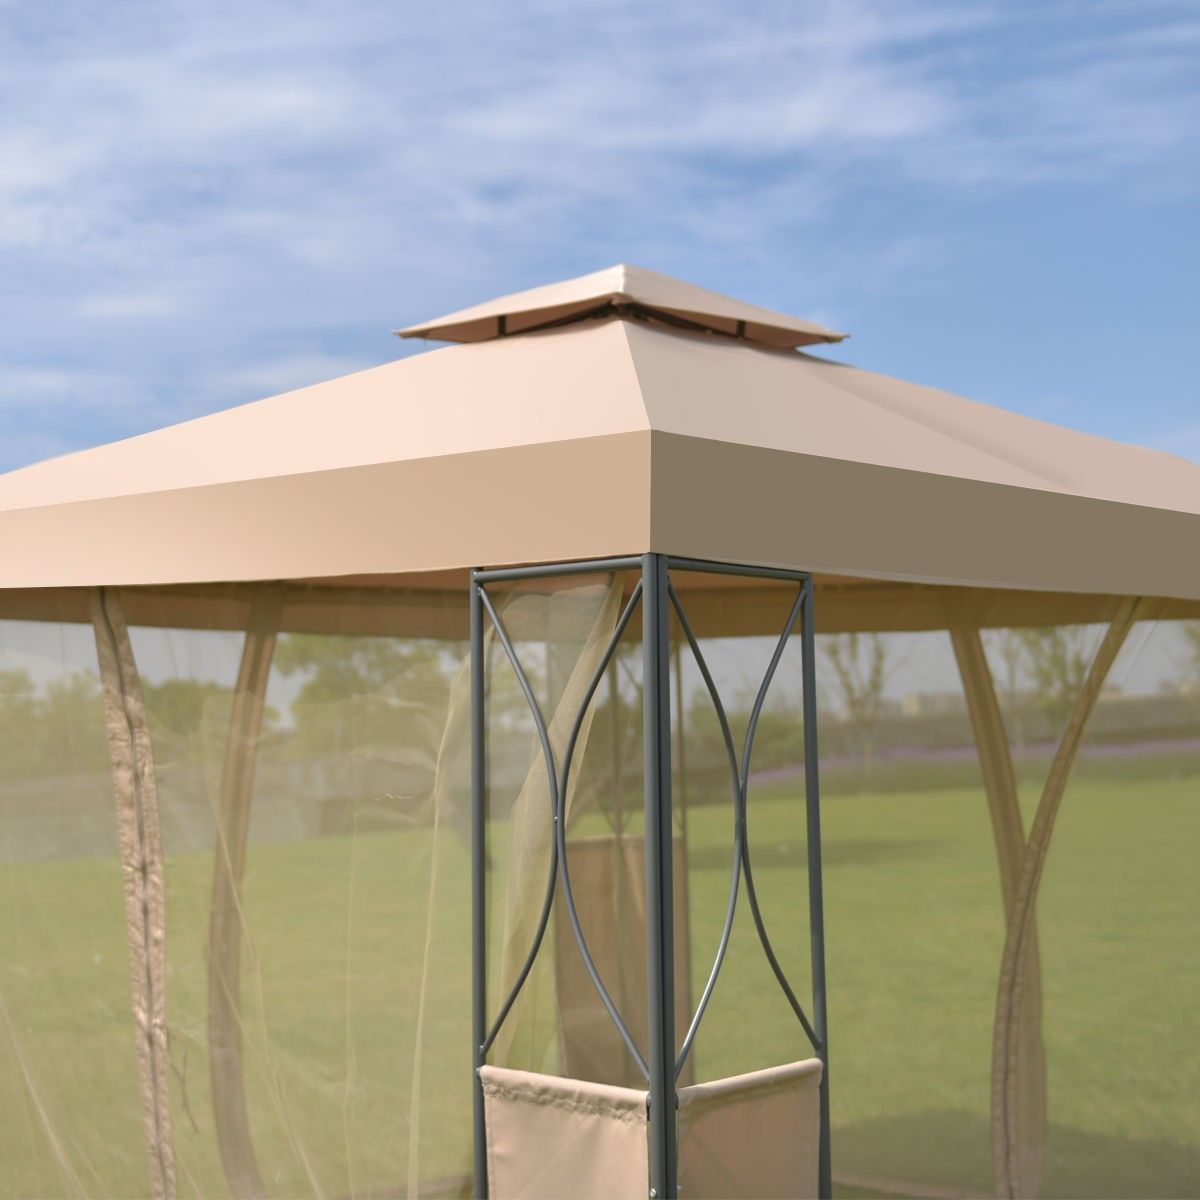 2 Tier 10 X 10 Patio Steel Gazebo Canopy Shelter 144 95 Free Shipping Material Steel And 180g Waterproof P Steel Gazebo Canopy Tent Outdoor Gazebo Canopy